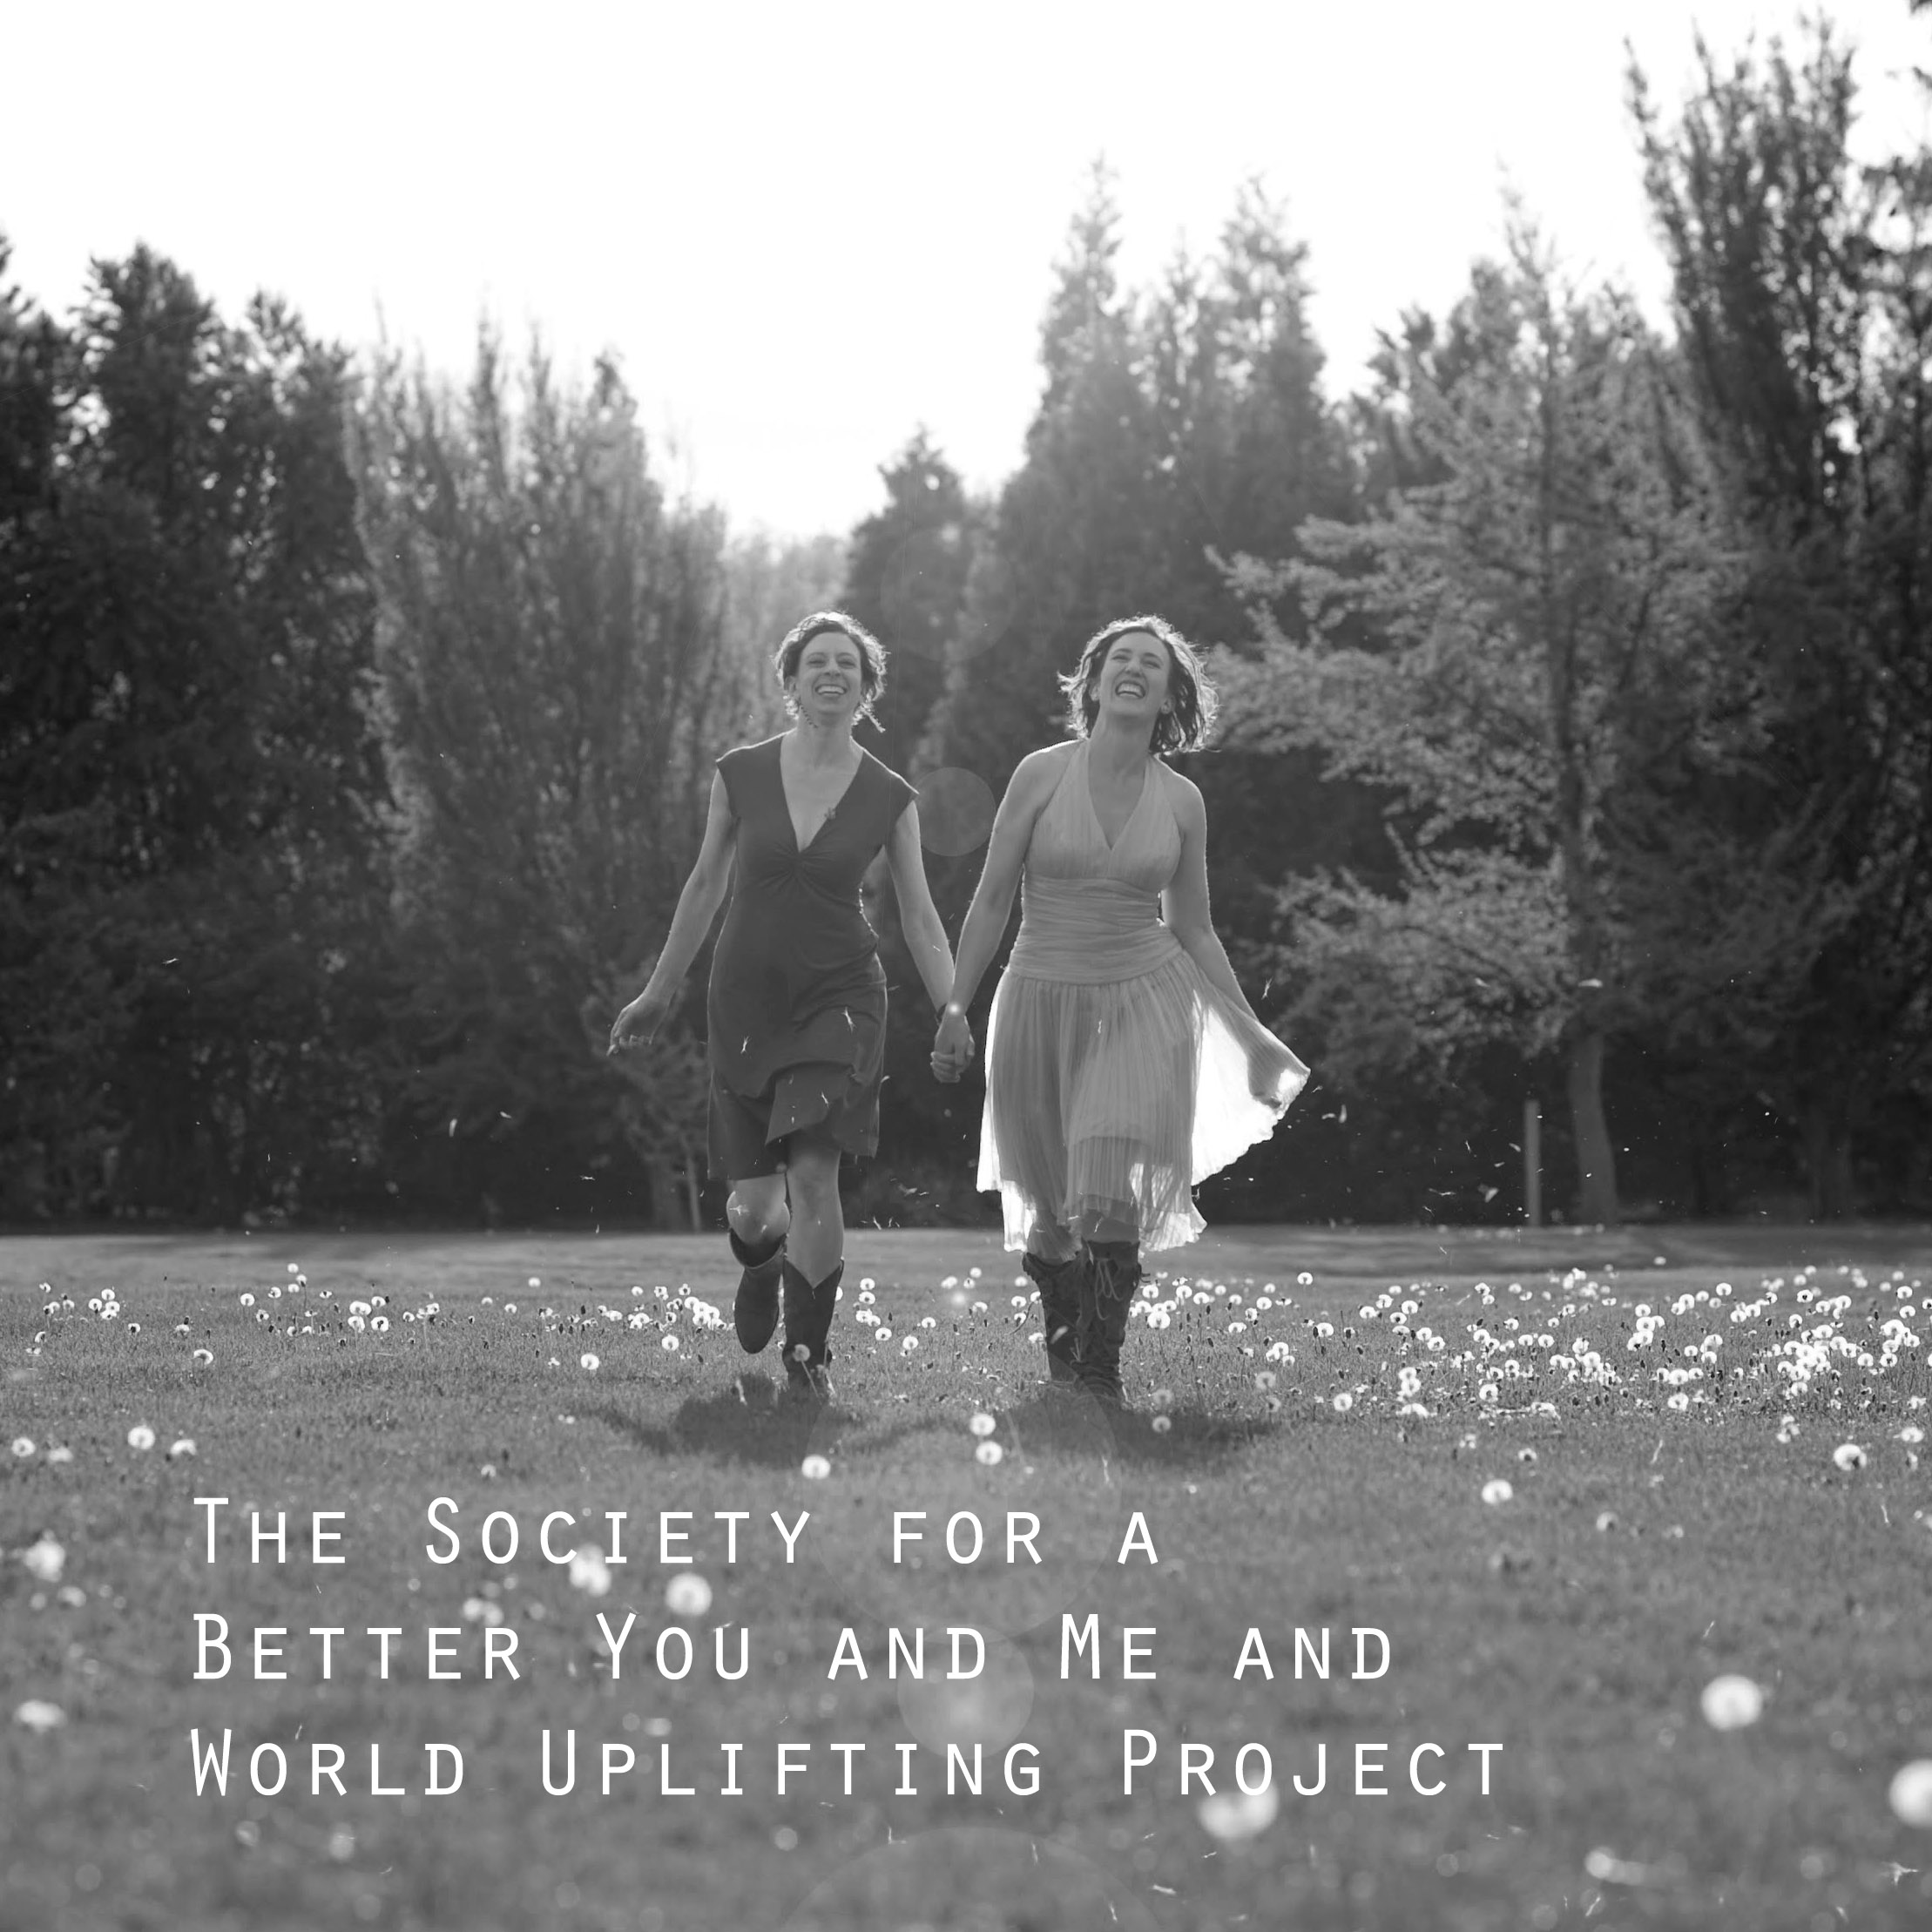 The Society for a Better You and Me and World Uplifting Project